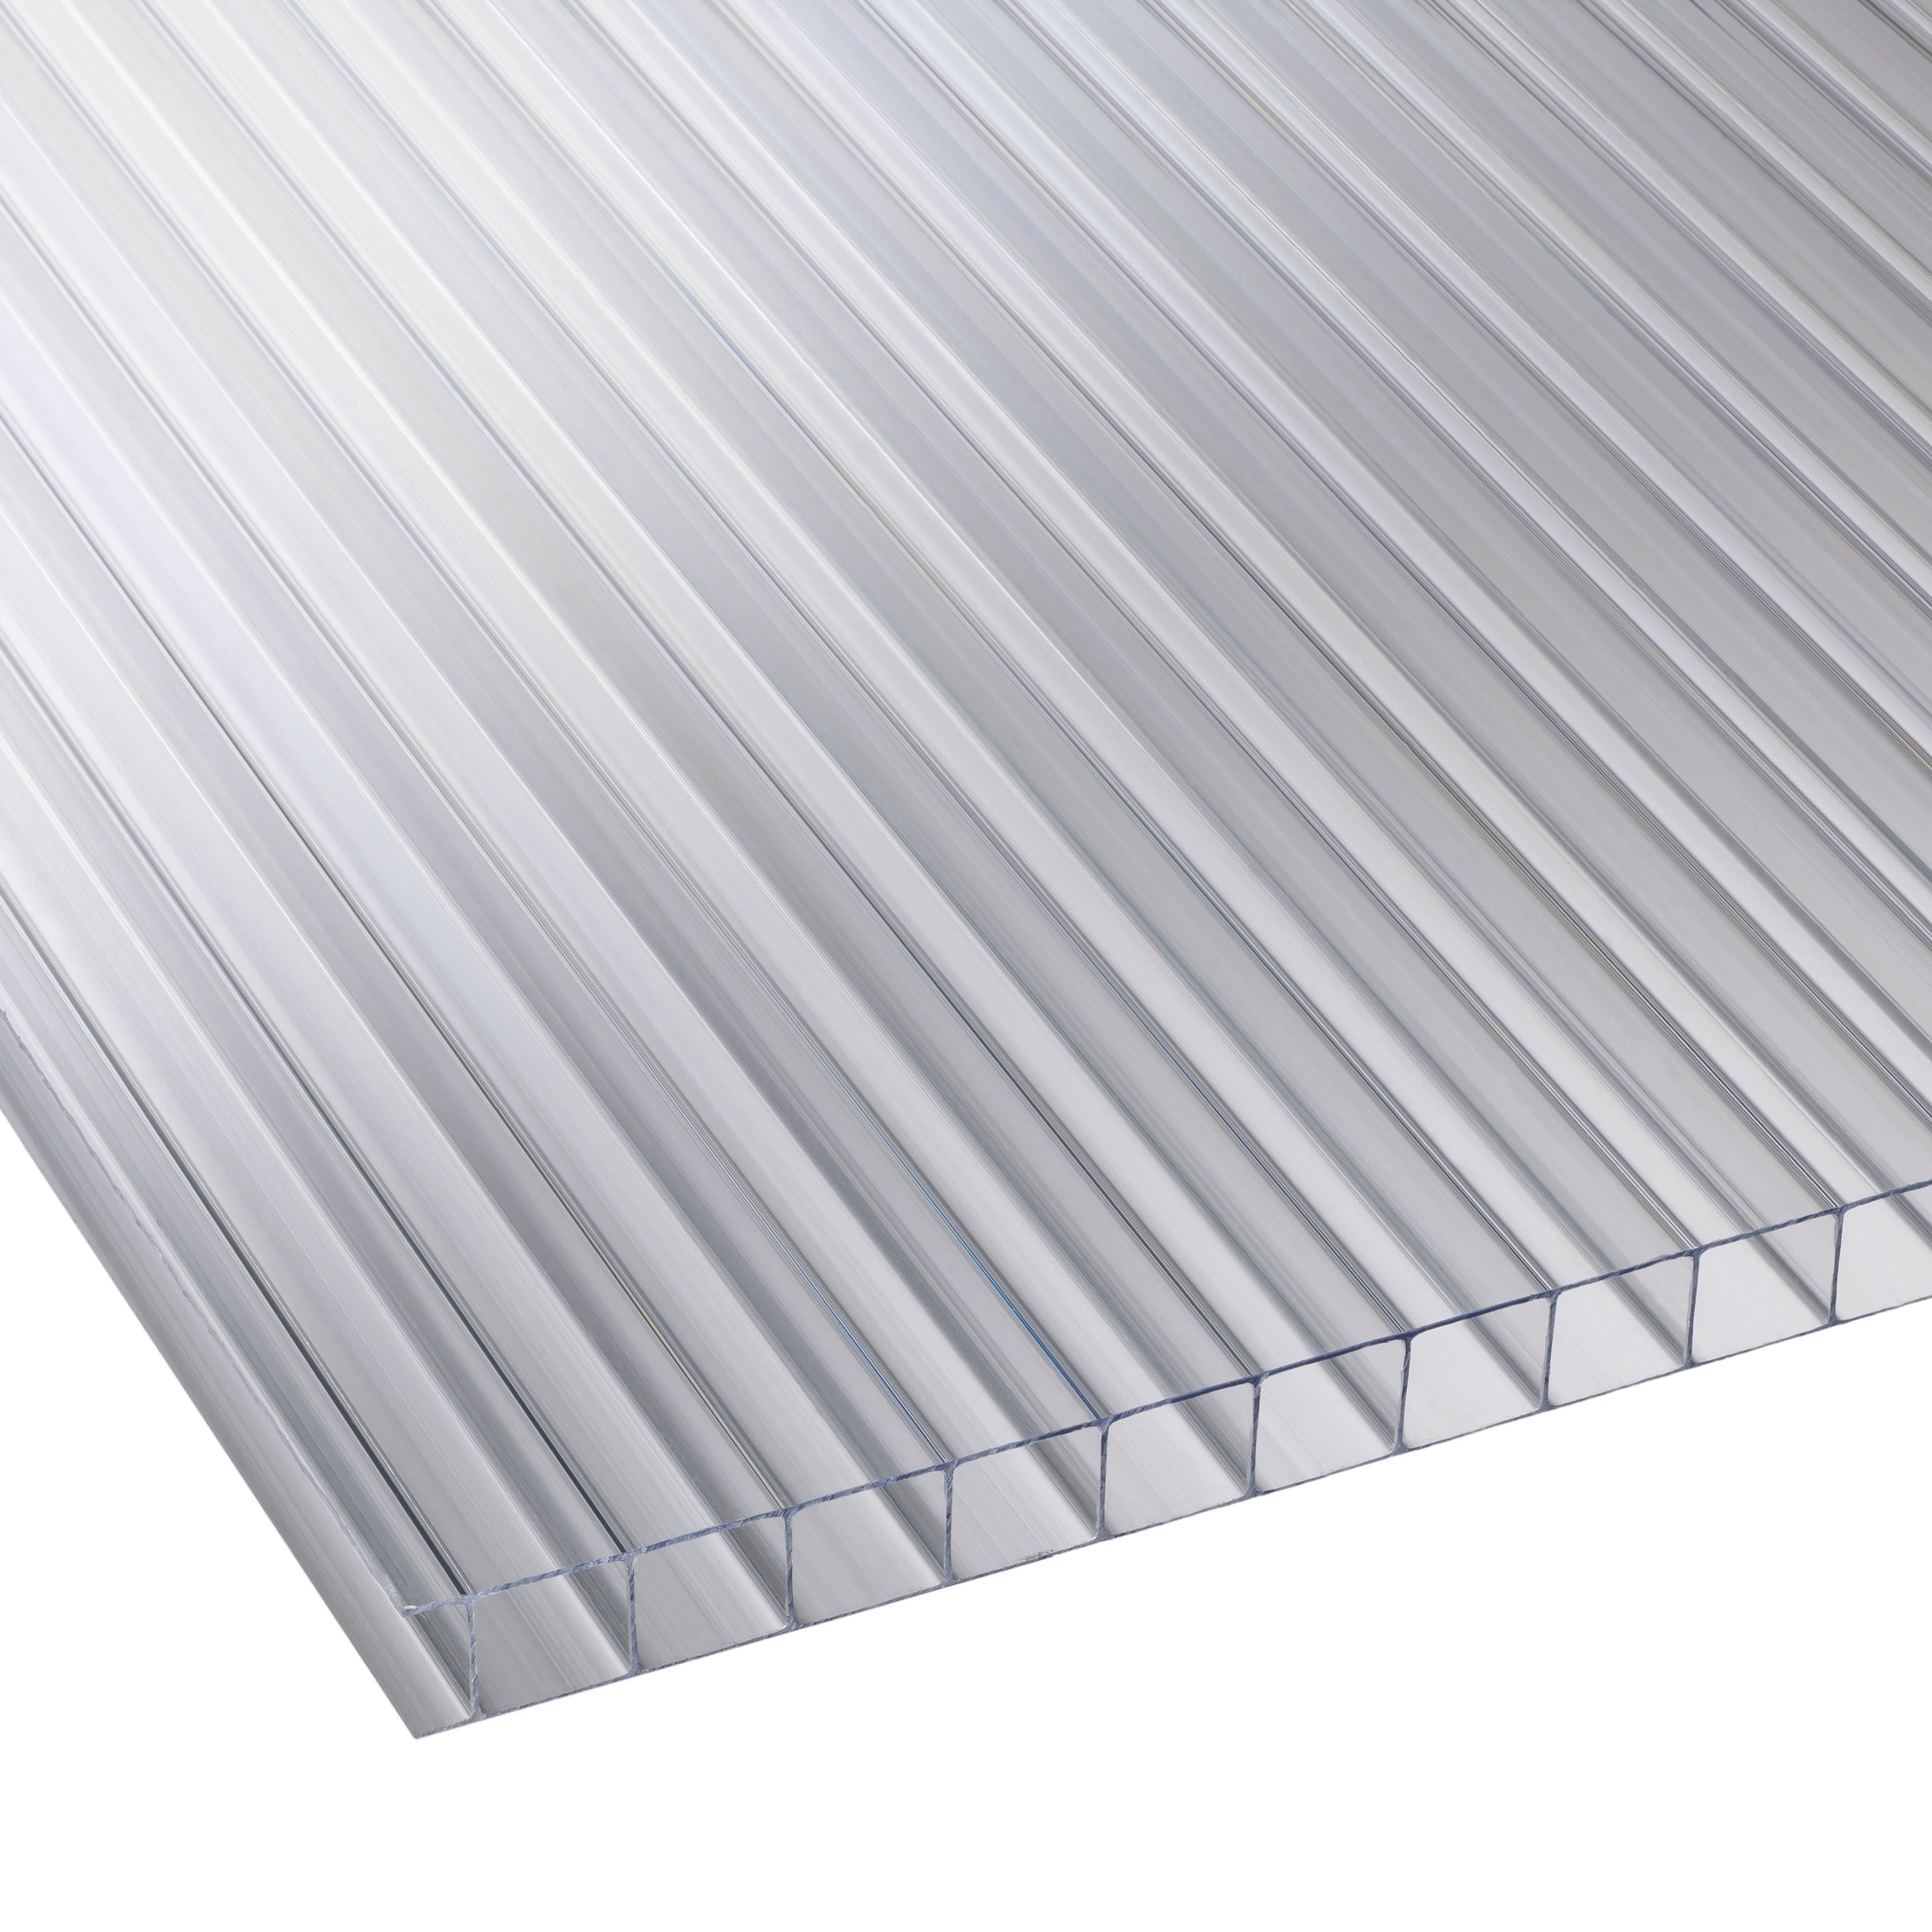 Clear Multiwall Polycarbonate Roofing Sheet 2.4m X 700mm, Pack Of 5